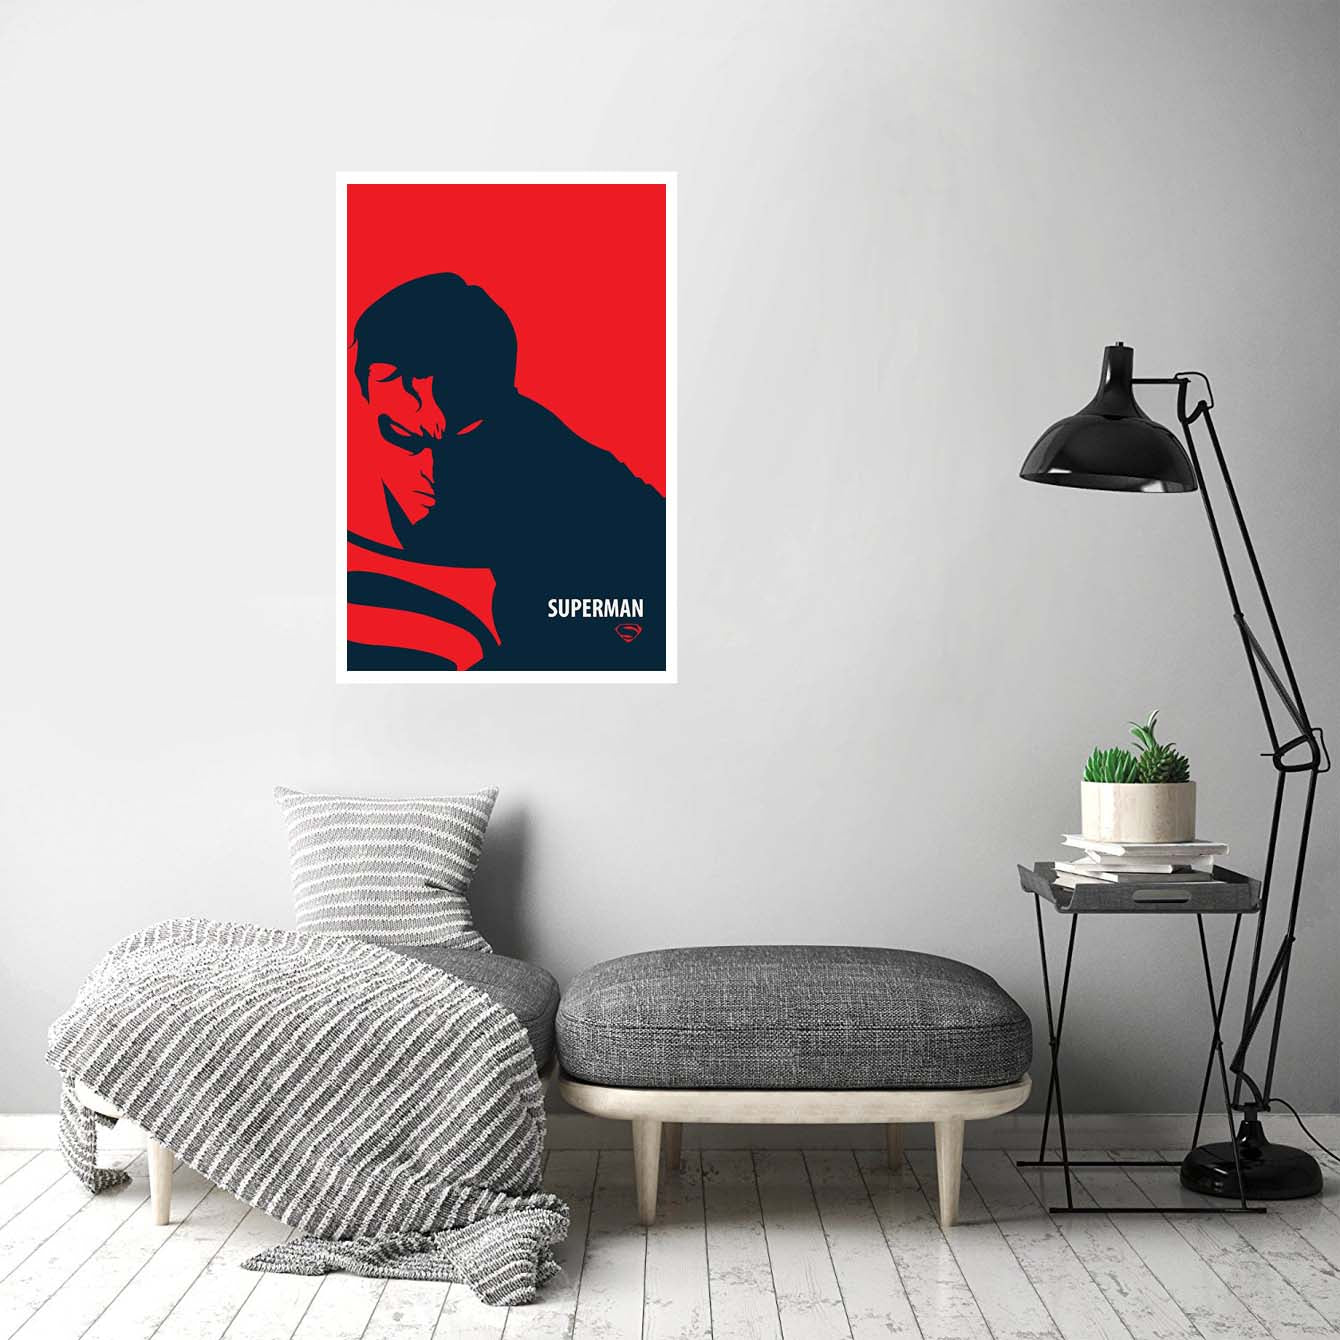 Superman Pop Art Posters